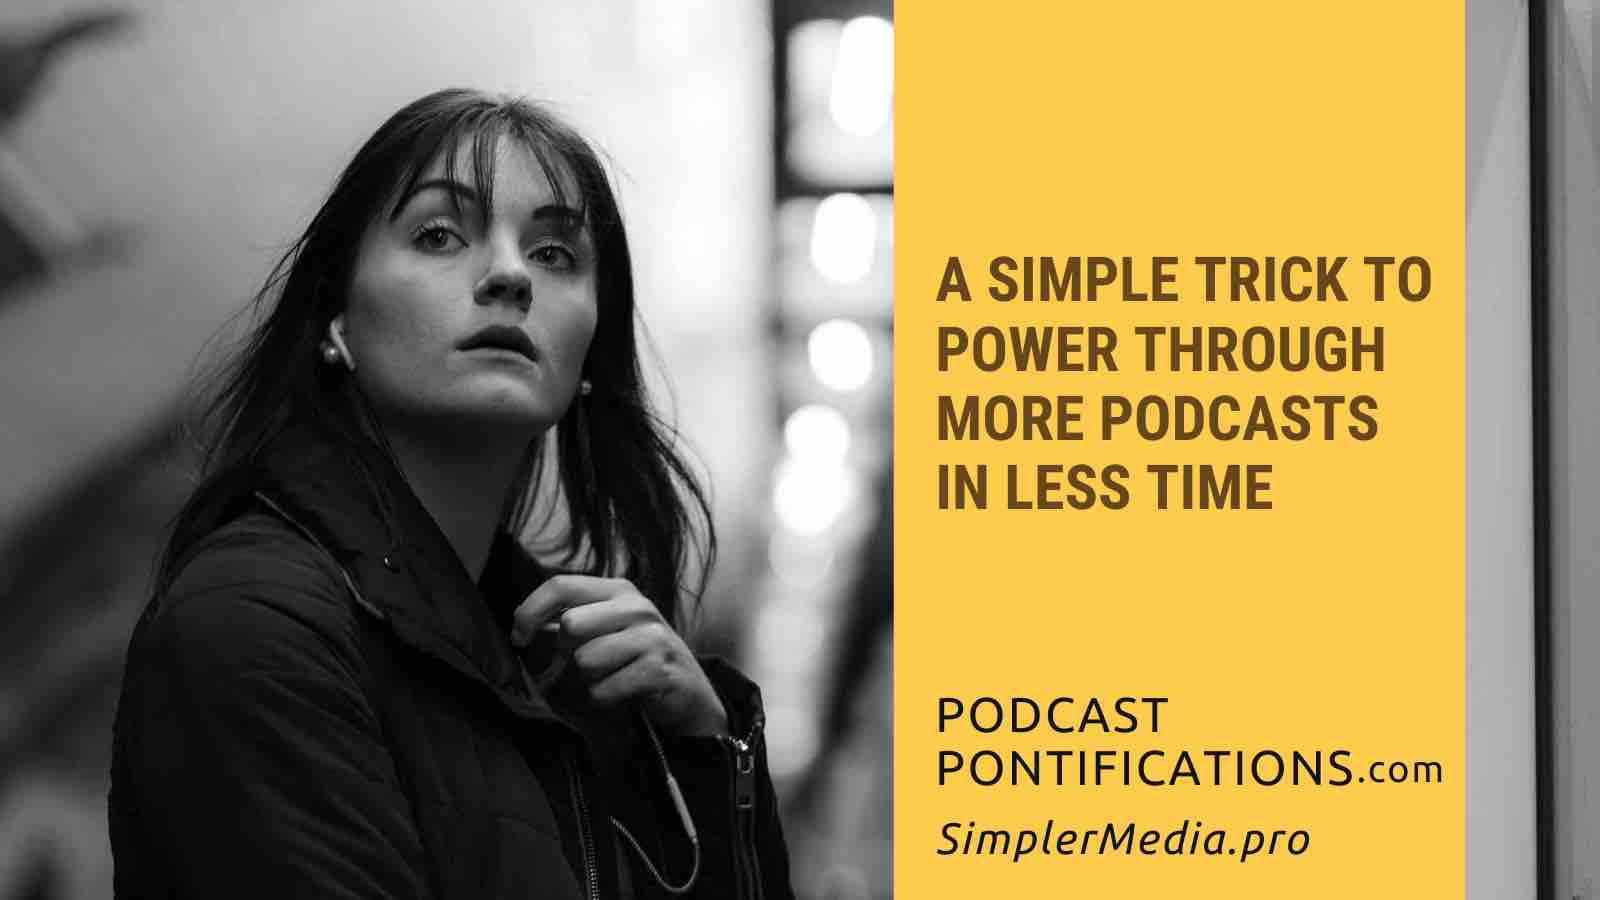 A Simple Trick To Power Through More Podcasts In Less Time